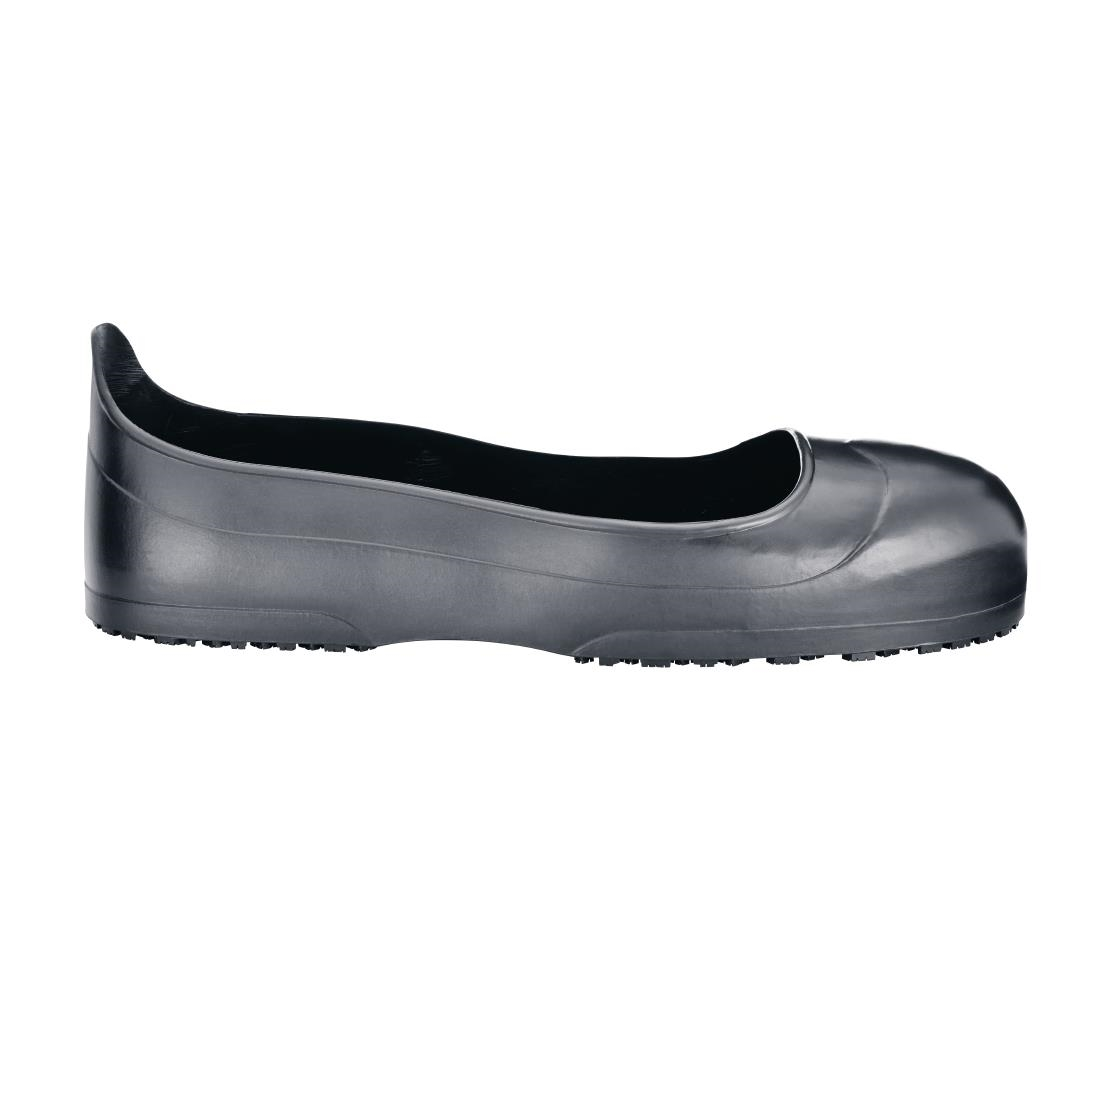 Shoes For Crews Crewguard Overshoes Steel Toe Cap Size Mp